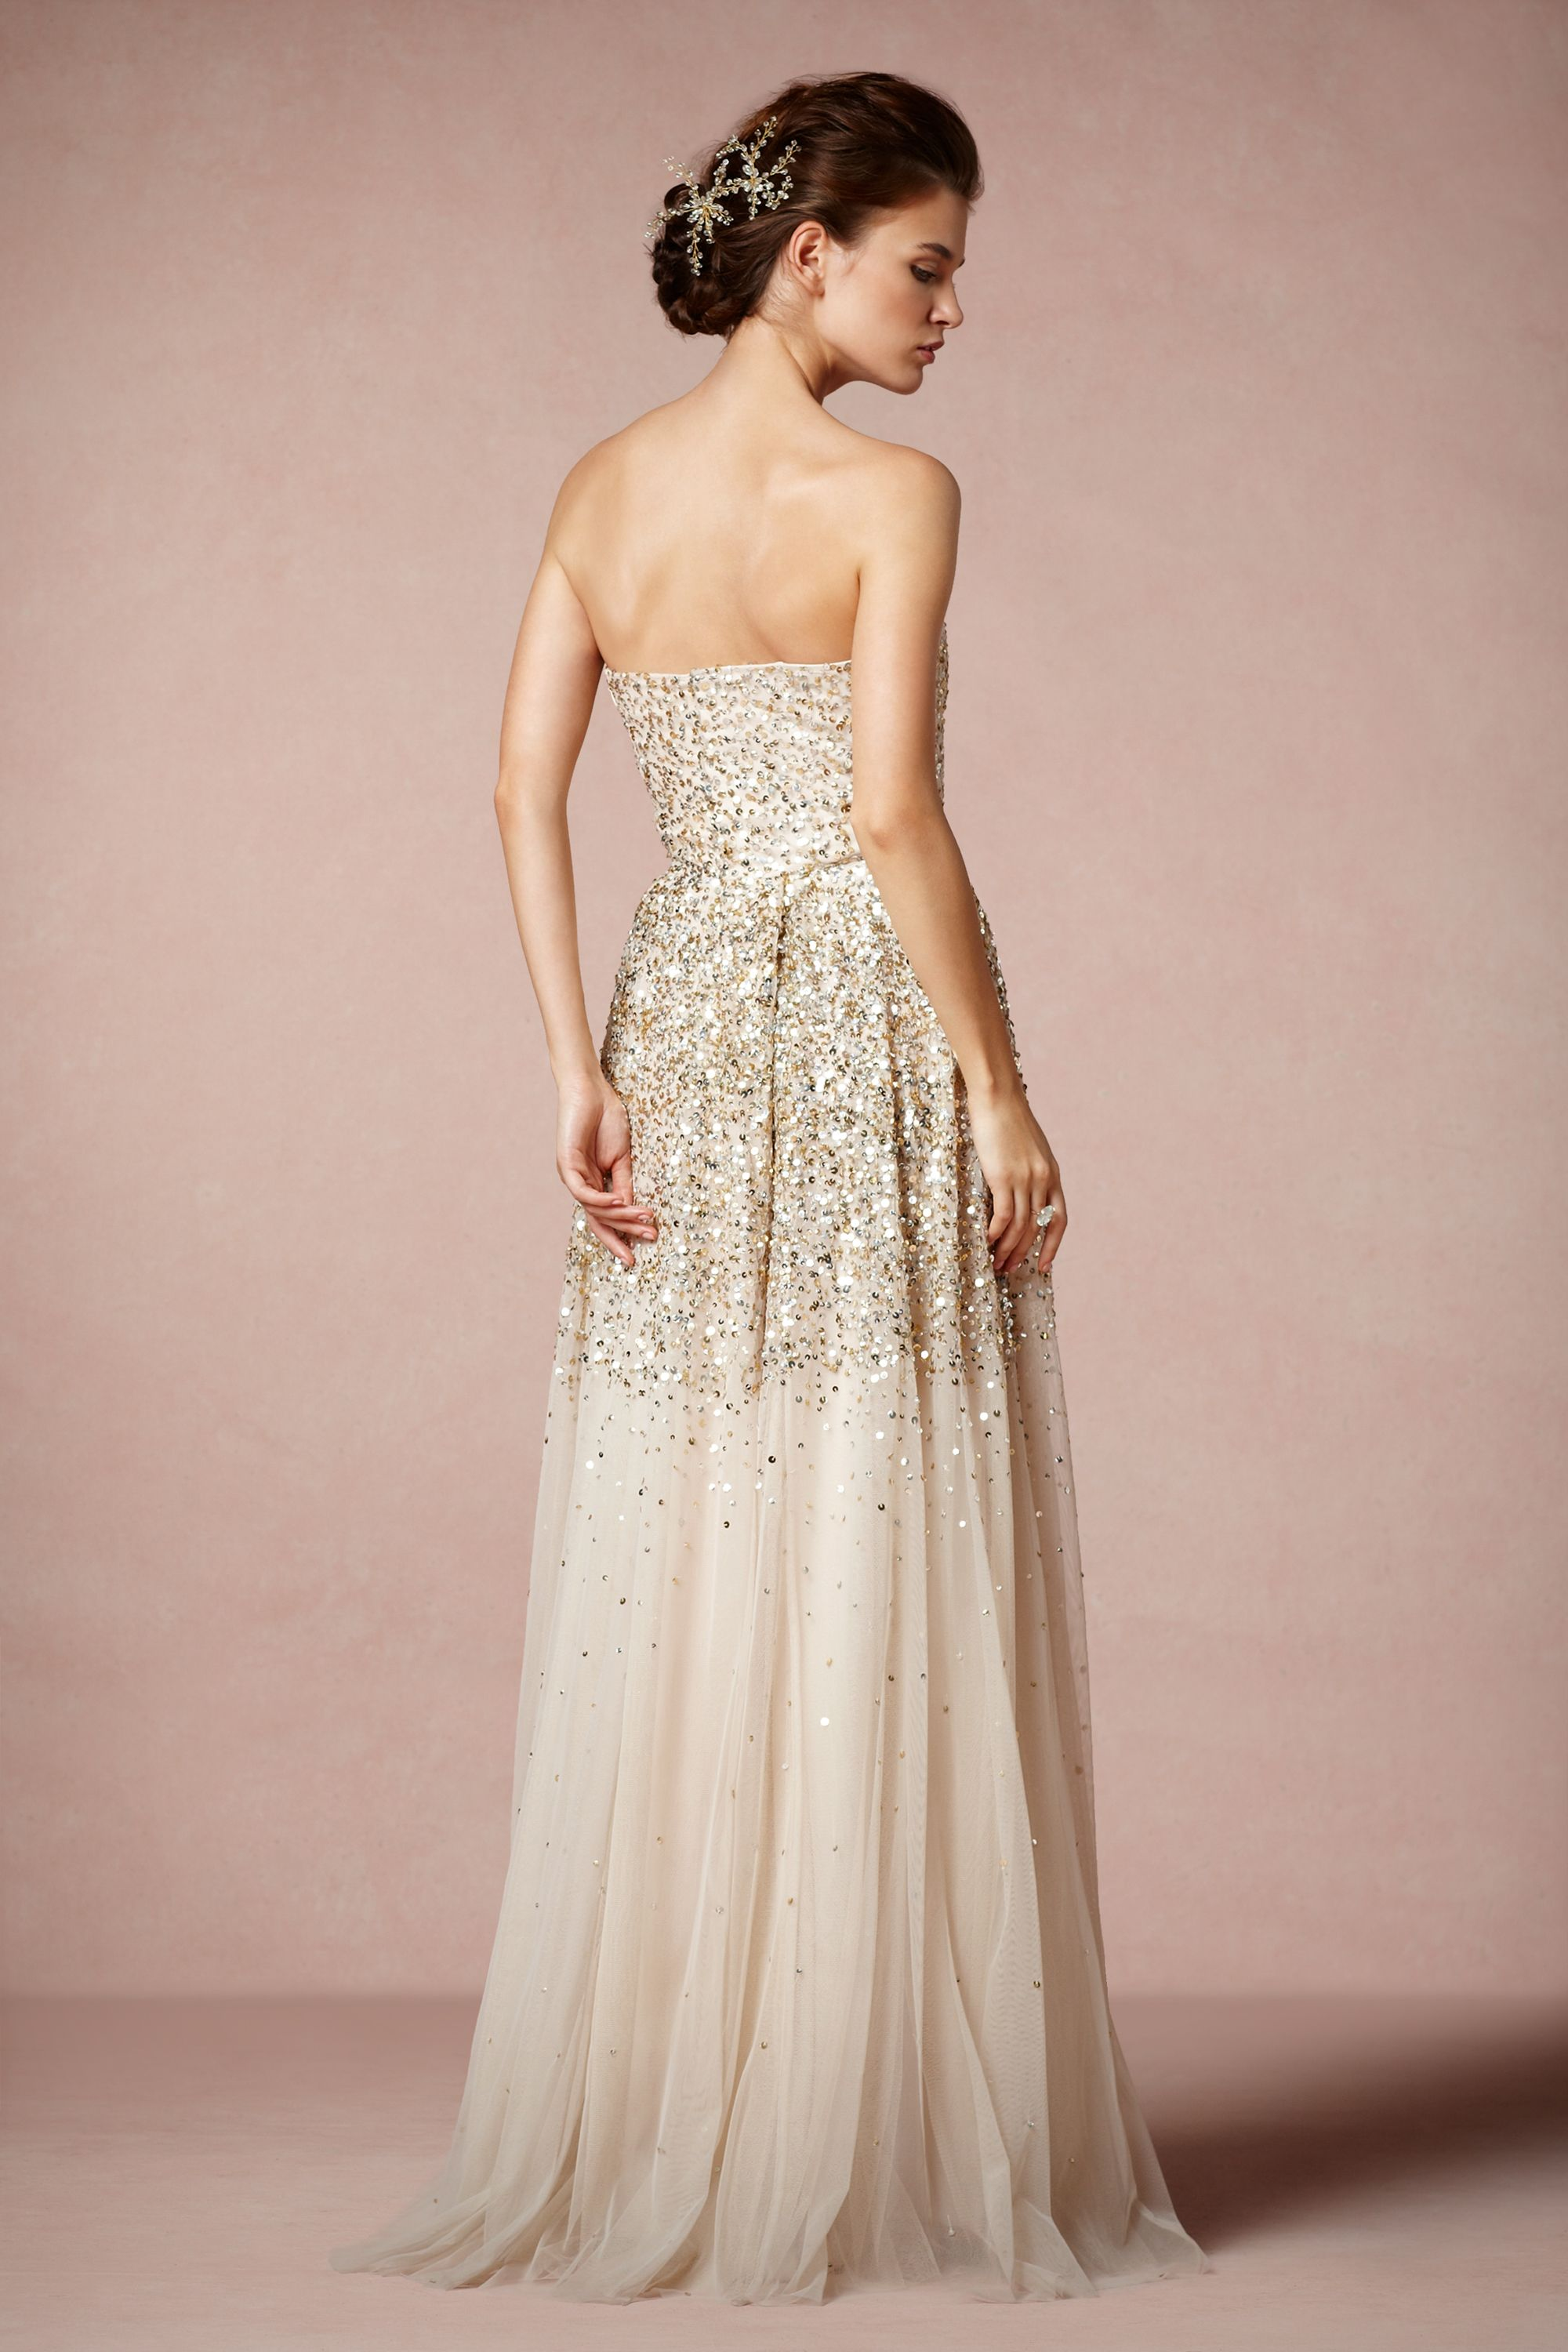 isadora gown sparkly wedding dresses Rachel Gilbert champagne Isadora Gown BHLDN